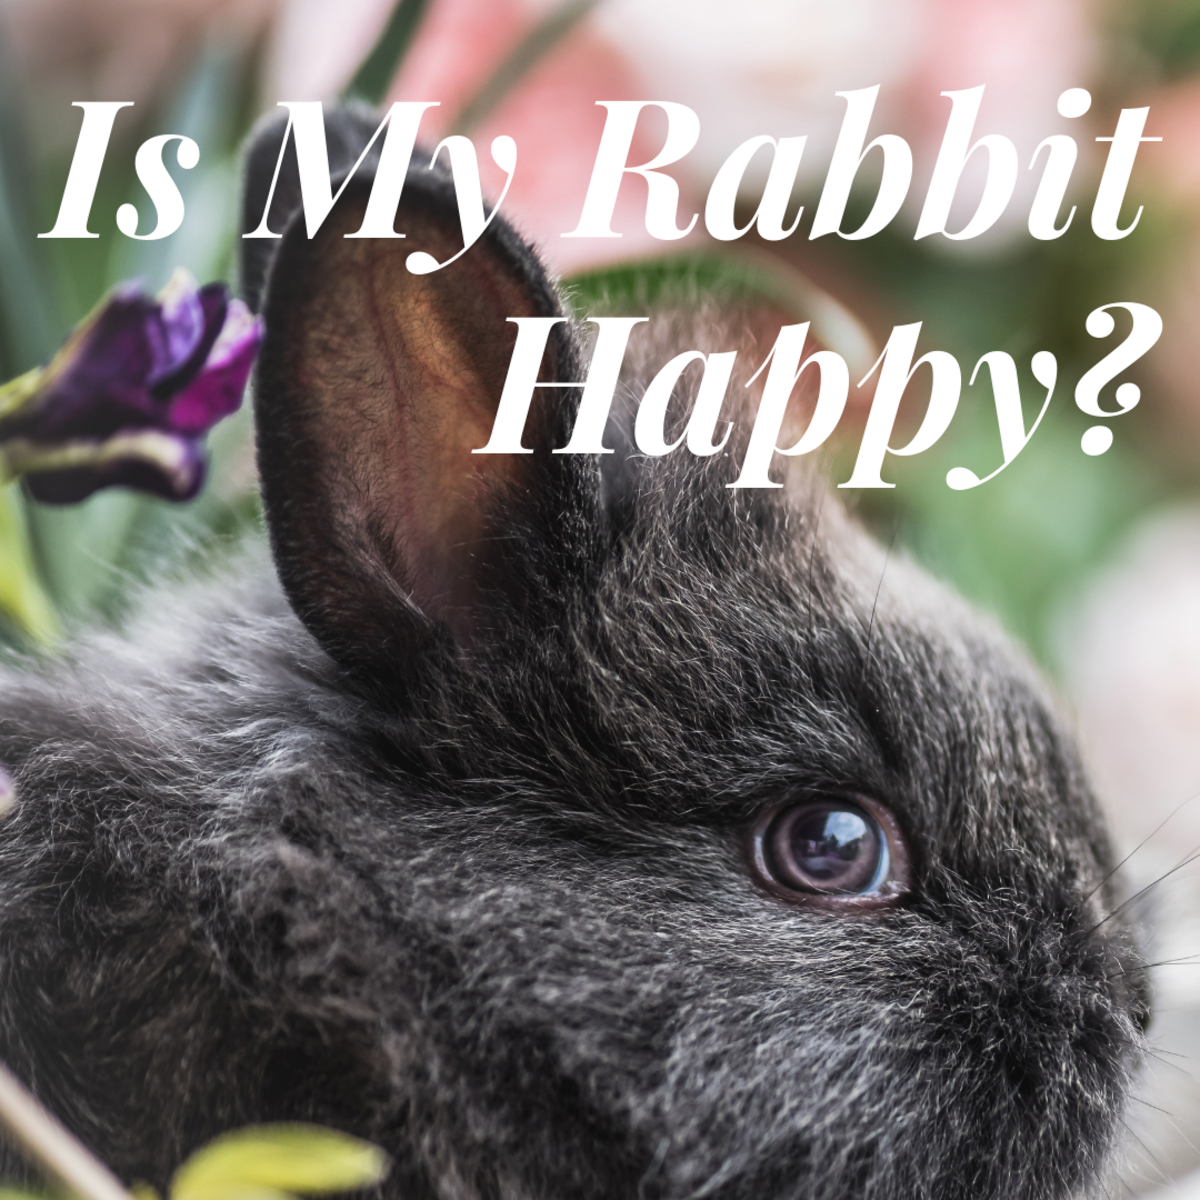 Is My Rabbit Happy? Signs Your Rabbit Is Content